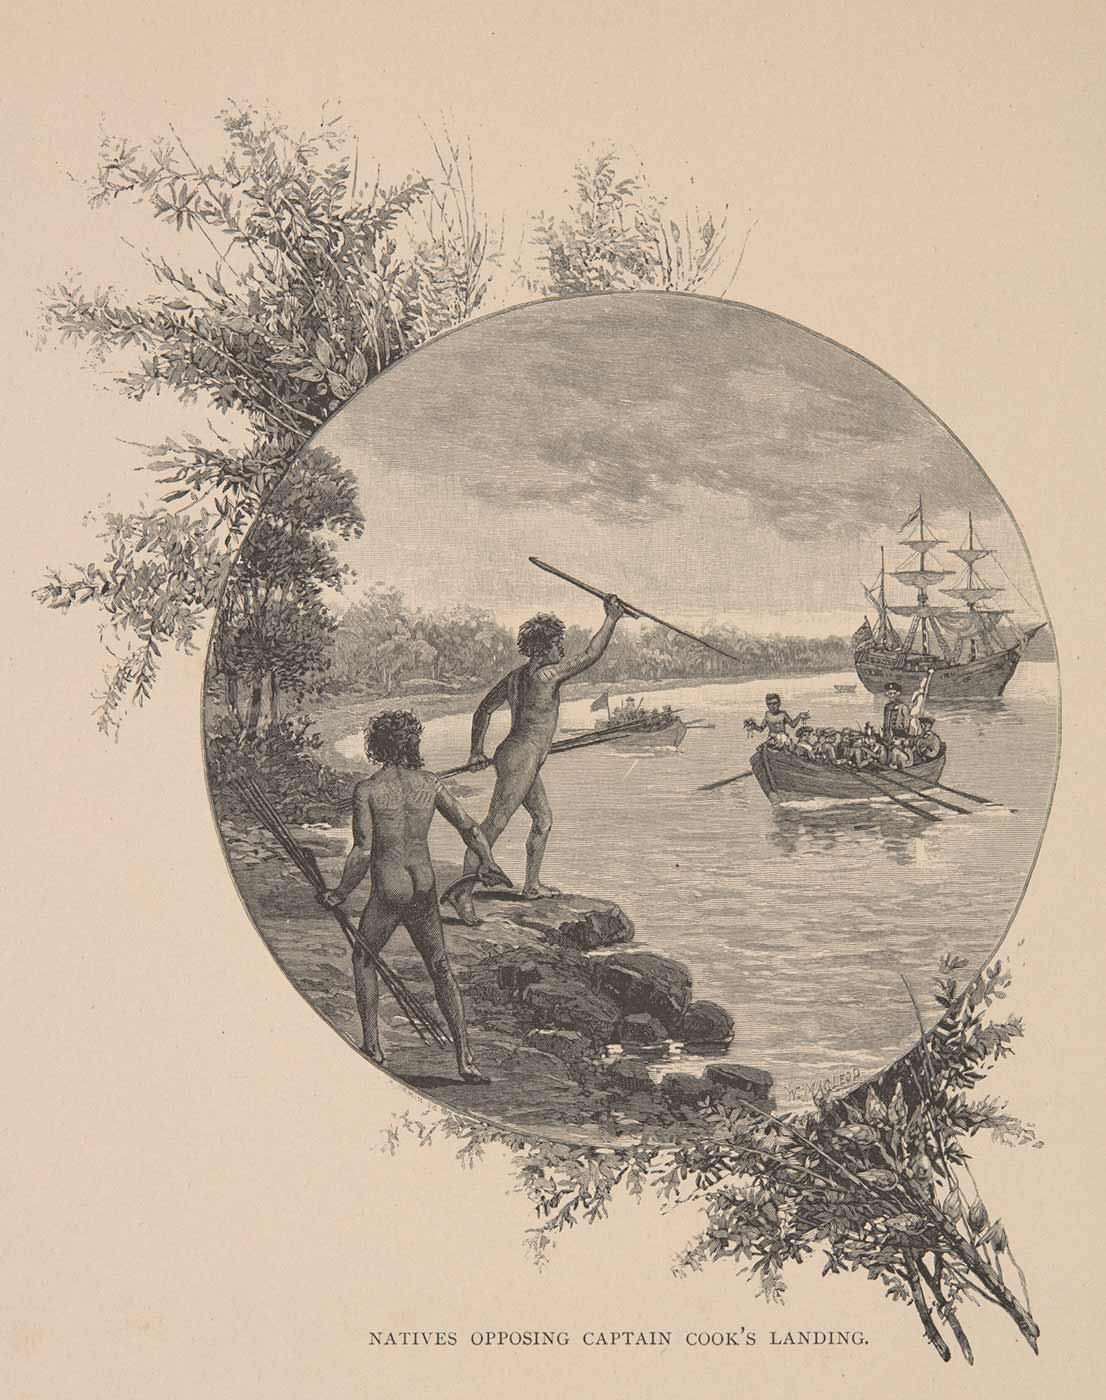 Illustration featuring two men in defensive stances and watching from a cliff edge overlooking a bay. A large ship is in the distance with rowboats heading in the direction of the two men. One of the men on the cliff edge is holding up his spear in attack mode. - click to view larger image